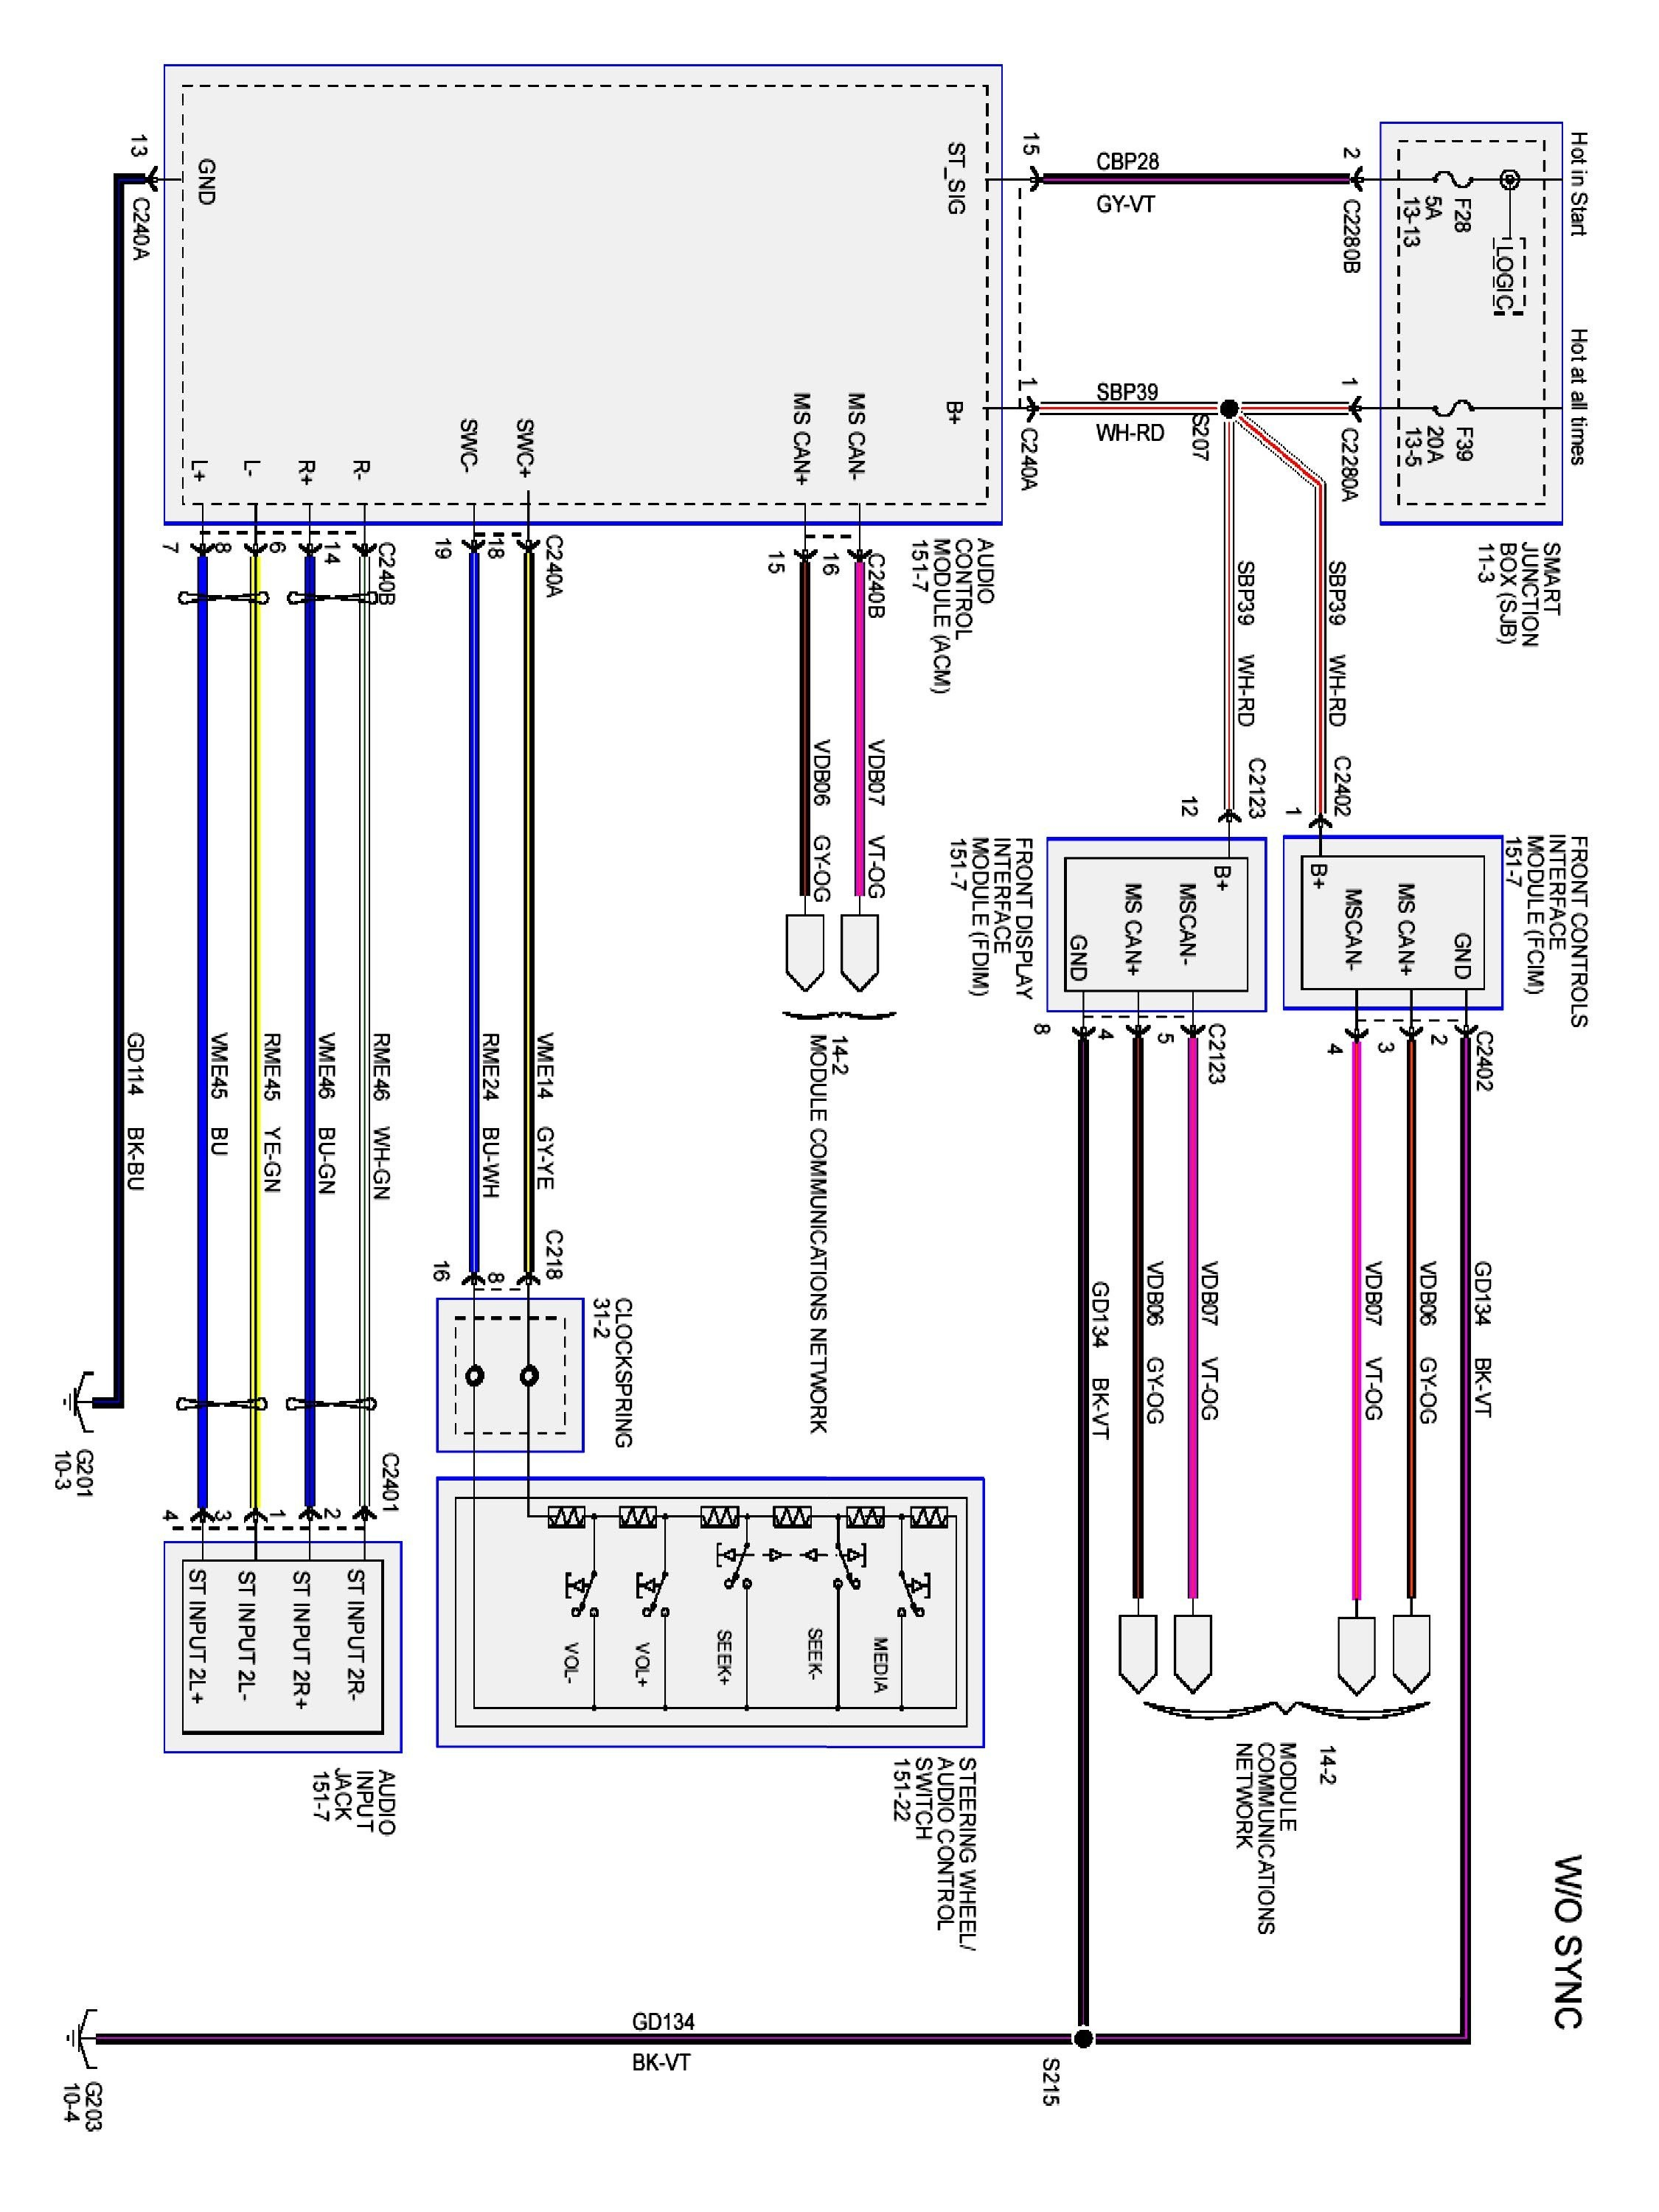 Classic Car Wiring Diagrams Car Radio Cables Chevy Wiring Diagram Kit Speaker Wire Stereo Of Classic Car Wiring Diagrams